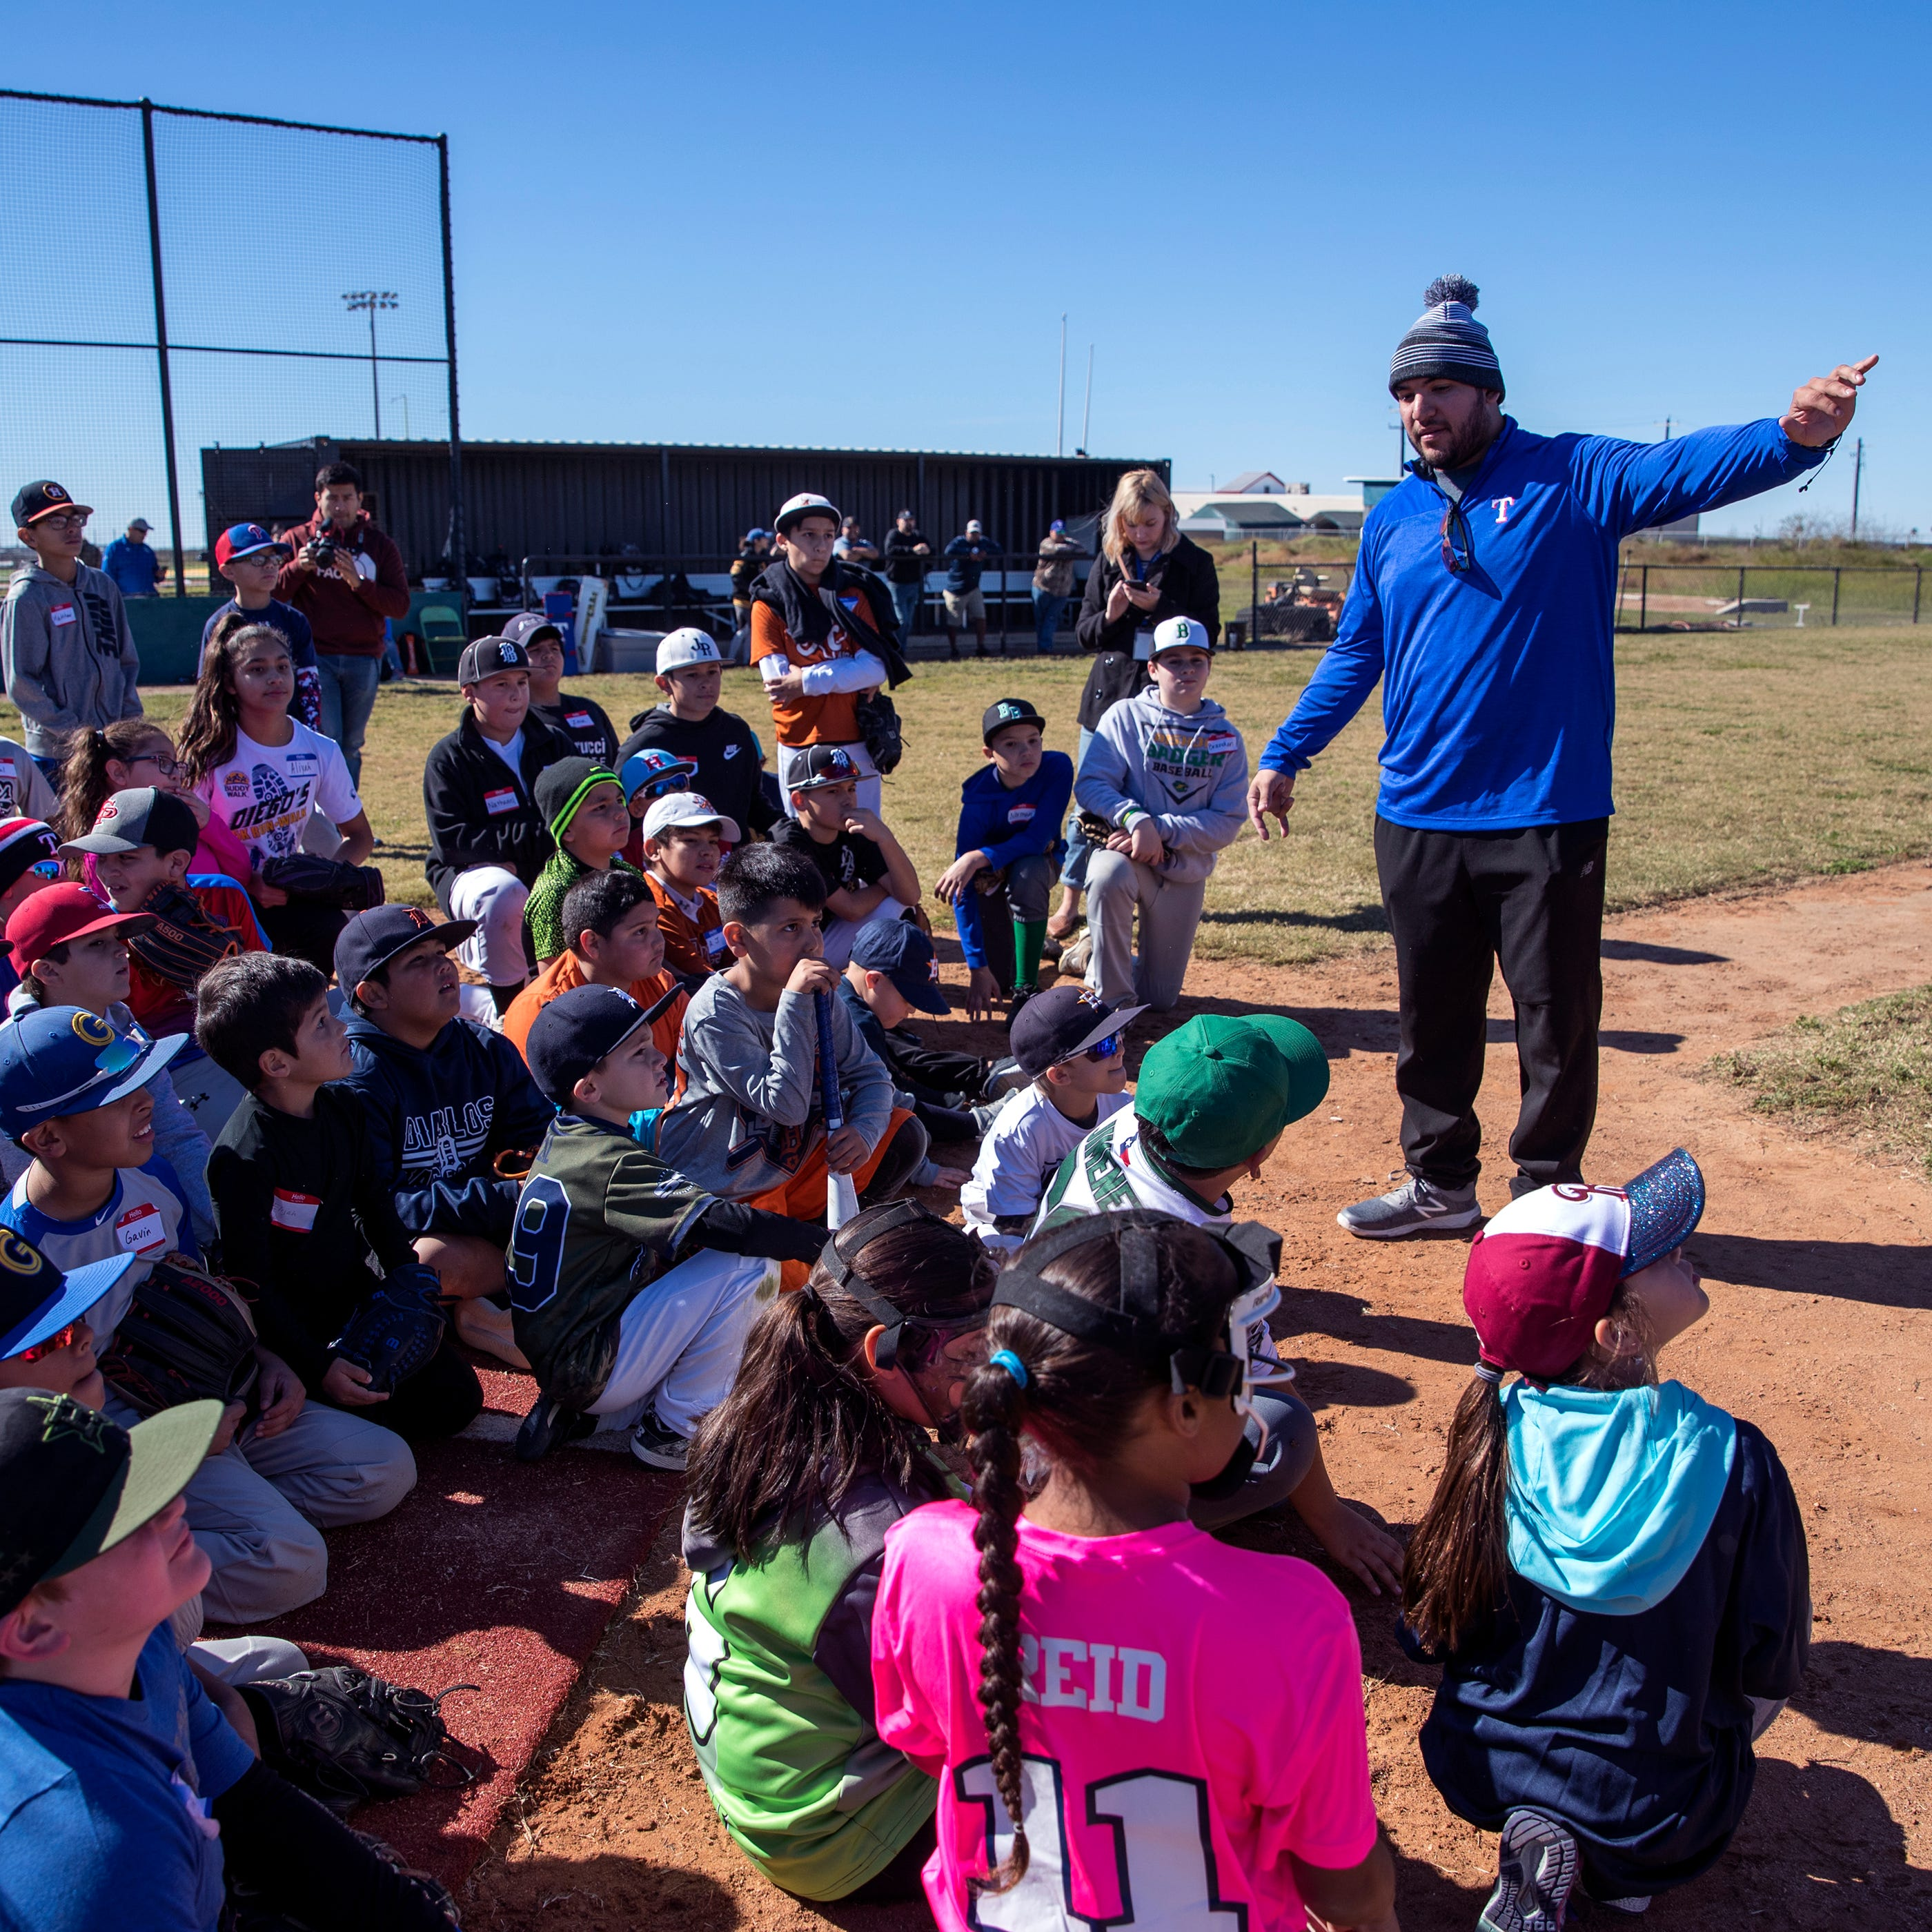 Jose Trevino's annual toy drive helps teach baseball and what it means to give